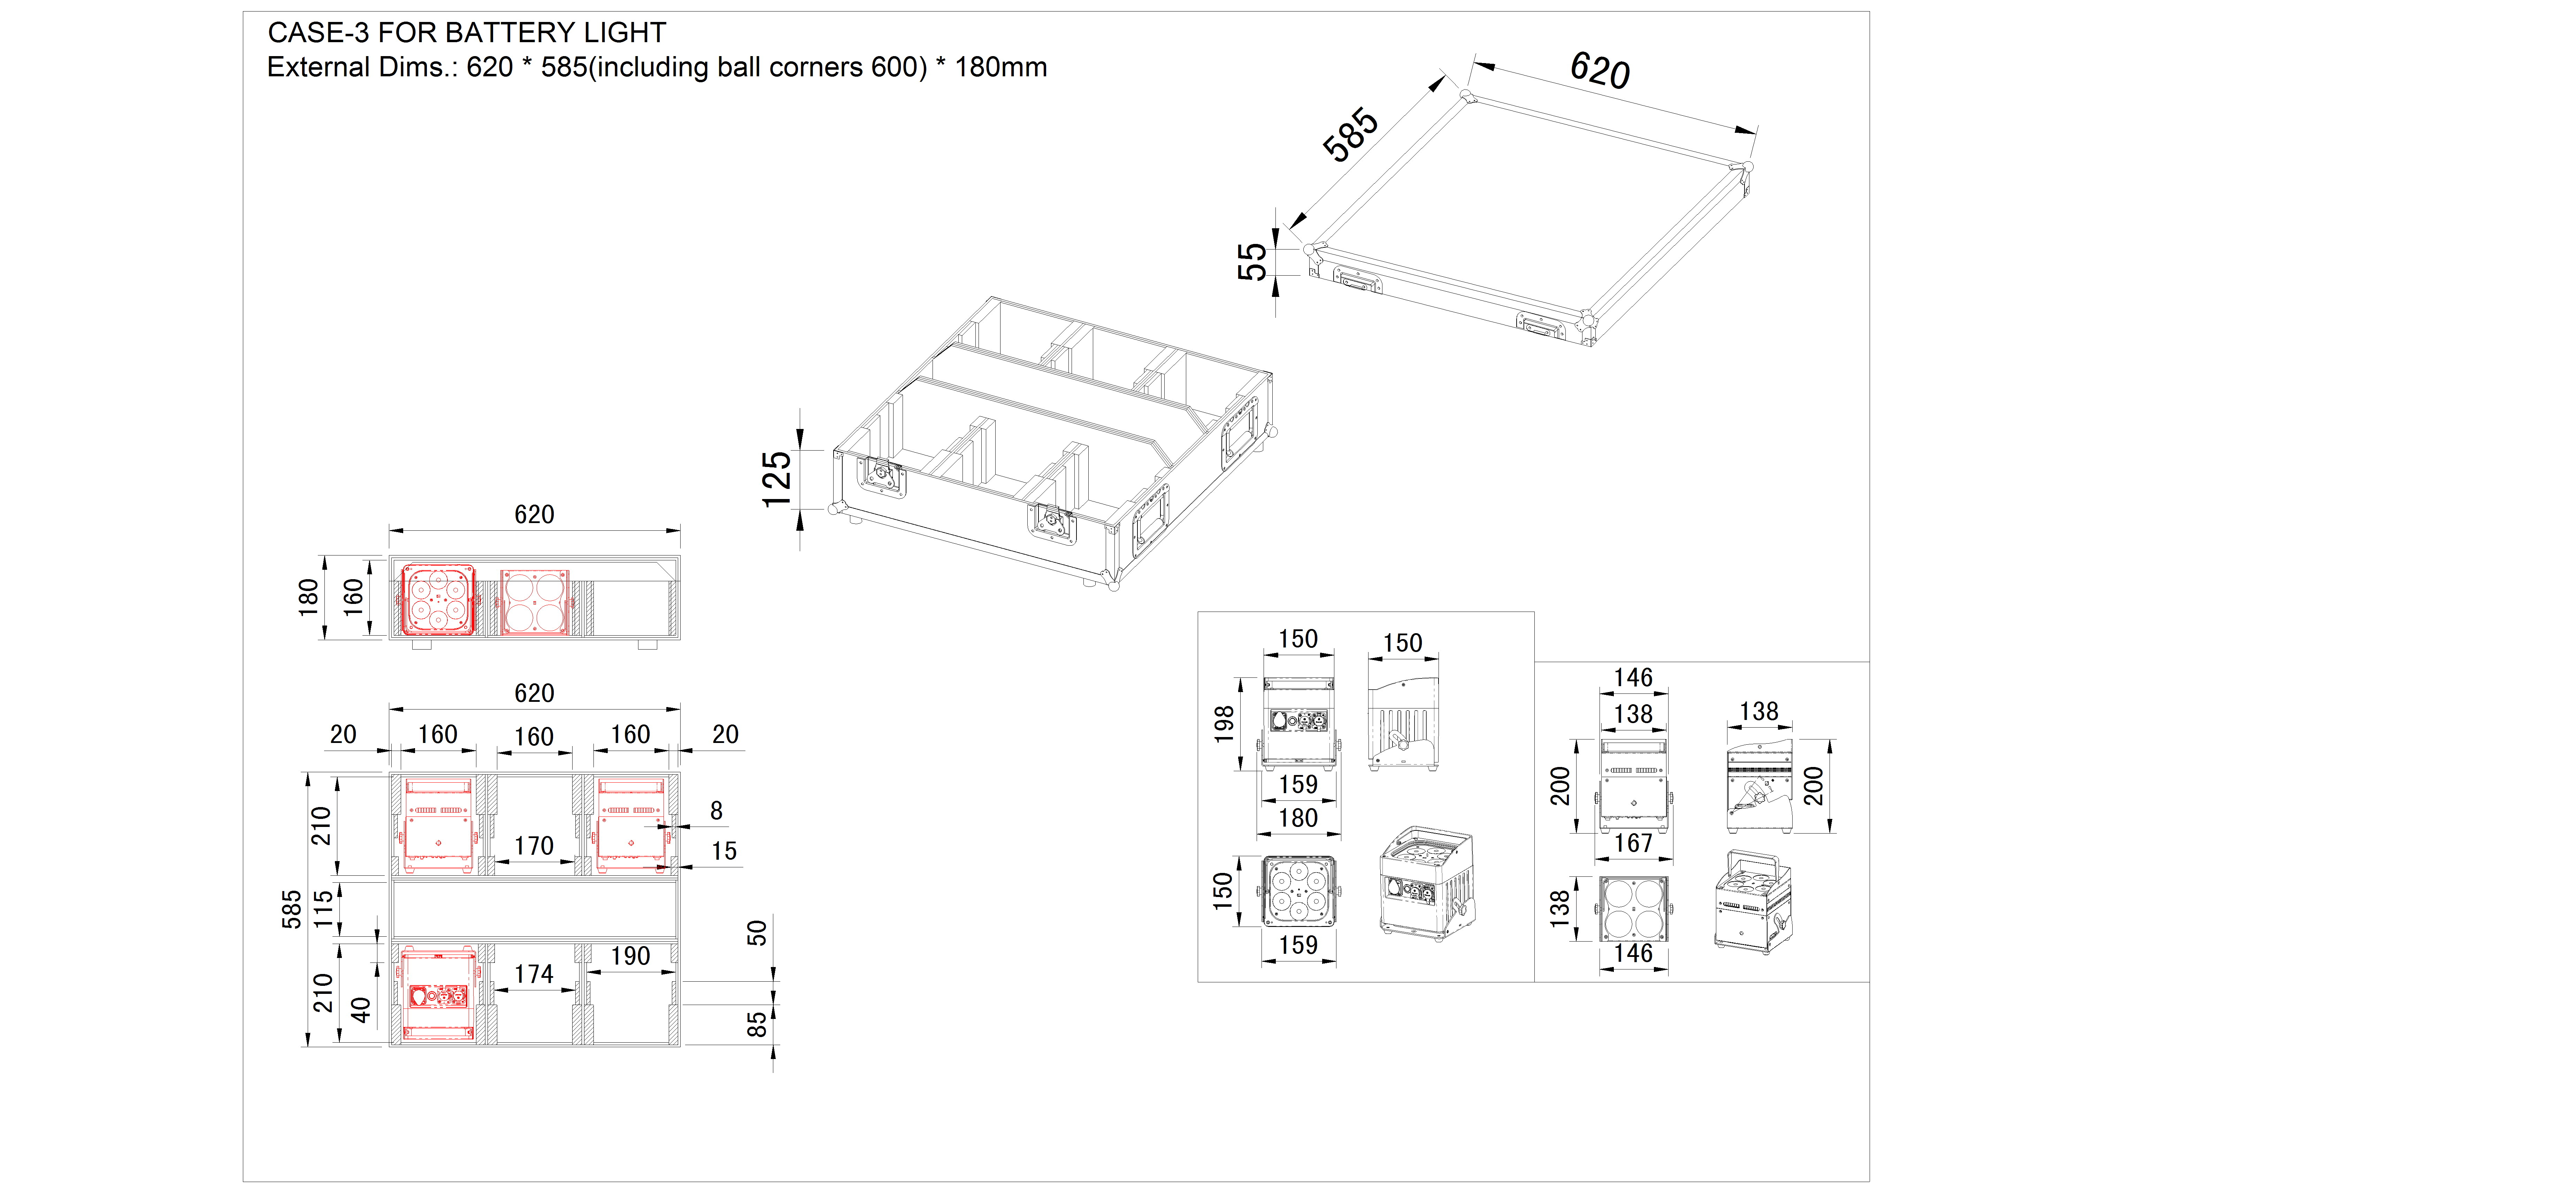 CASE-3 FOR BATTERY LIGHTS - Dimensions